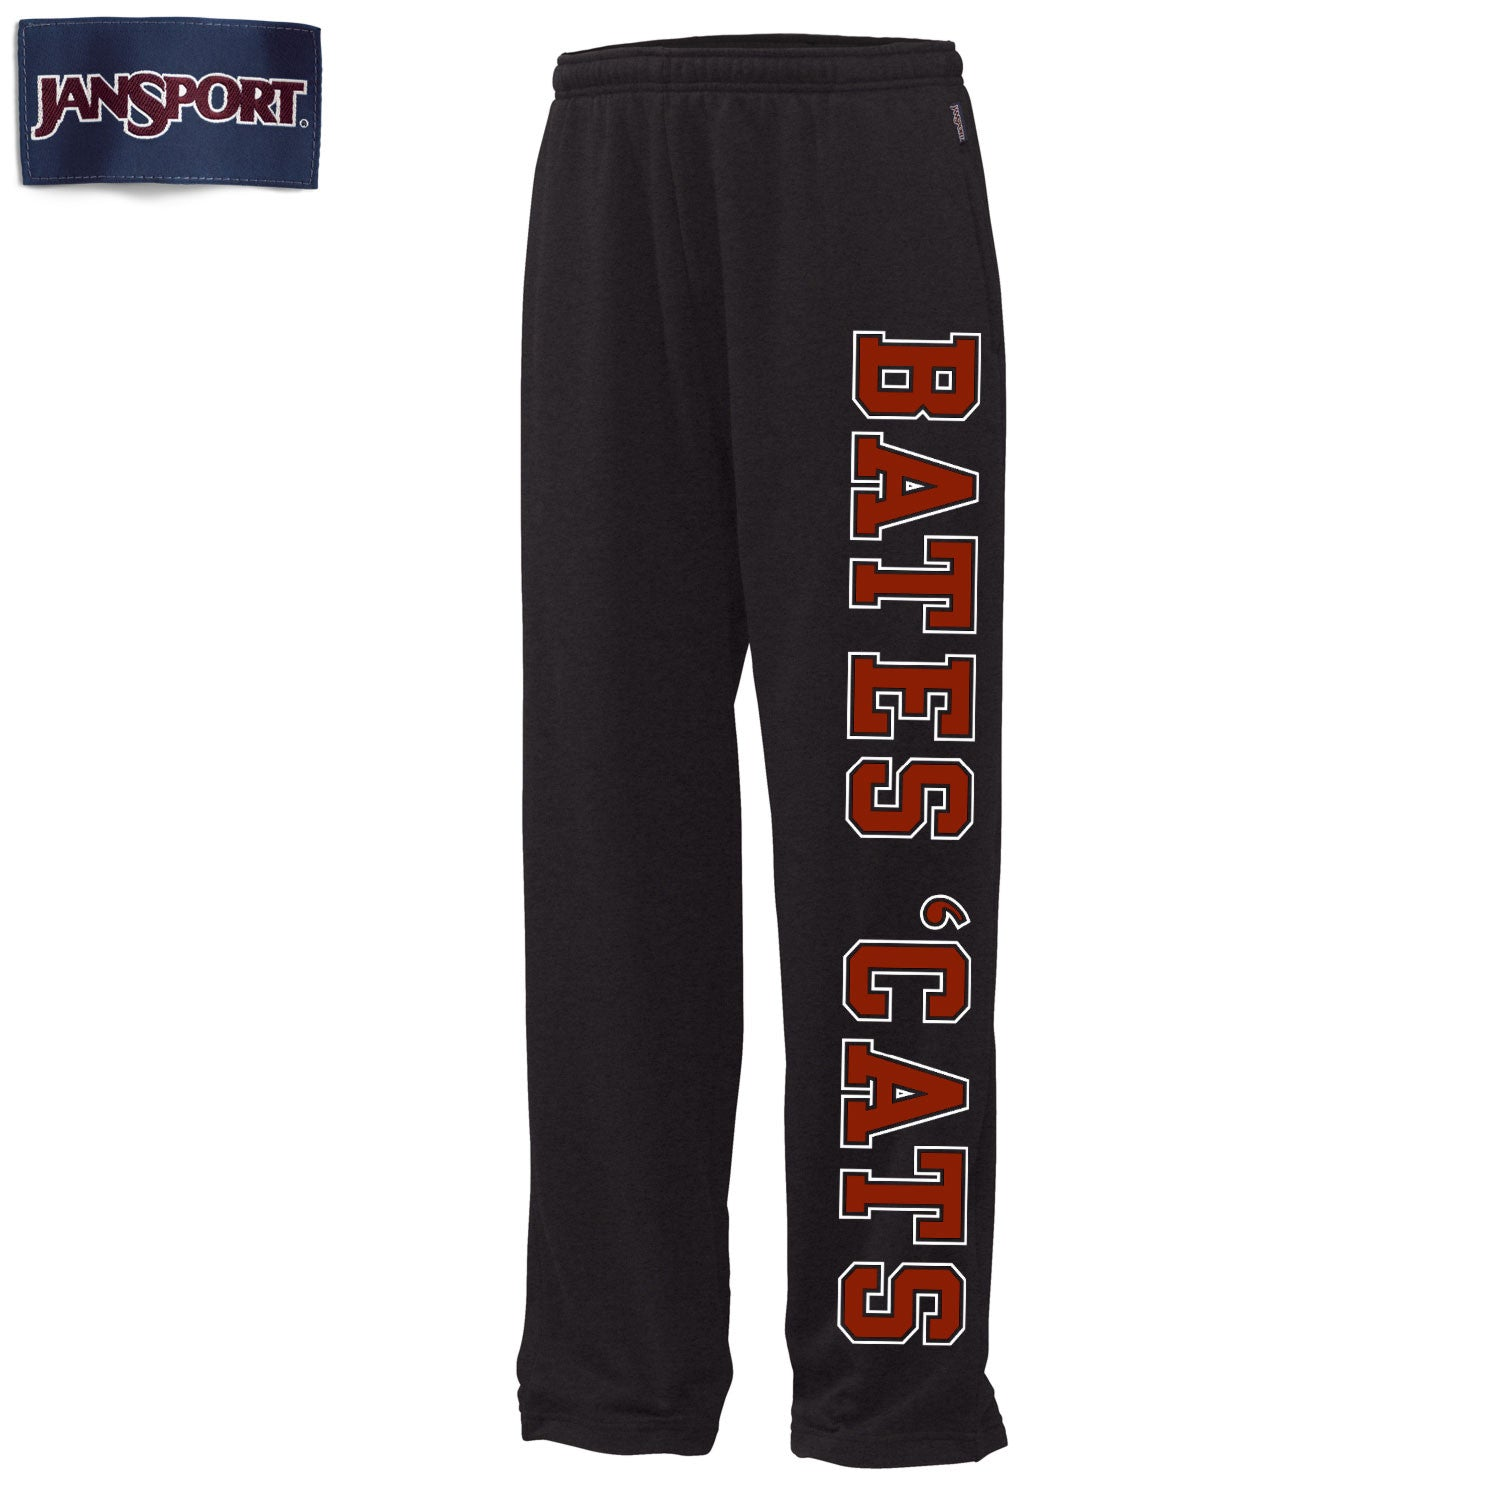 Open bottom sweatpants for kids - Bottoms, Kids & Babies, Kids Clothing, Limited Sizes, Pants